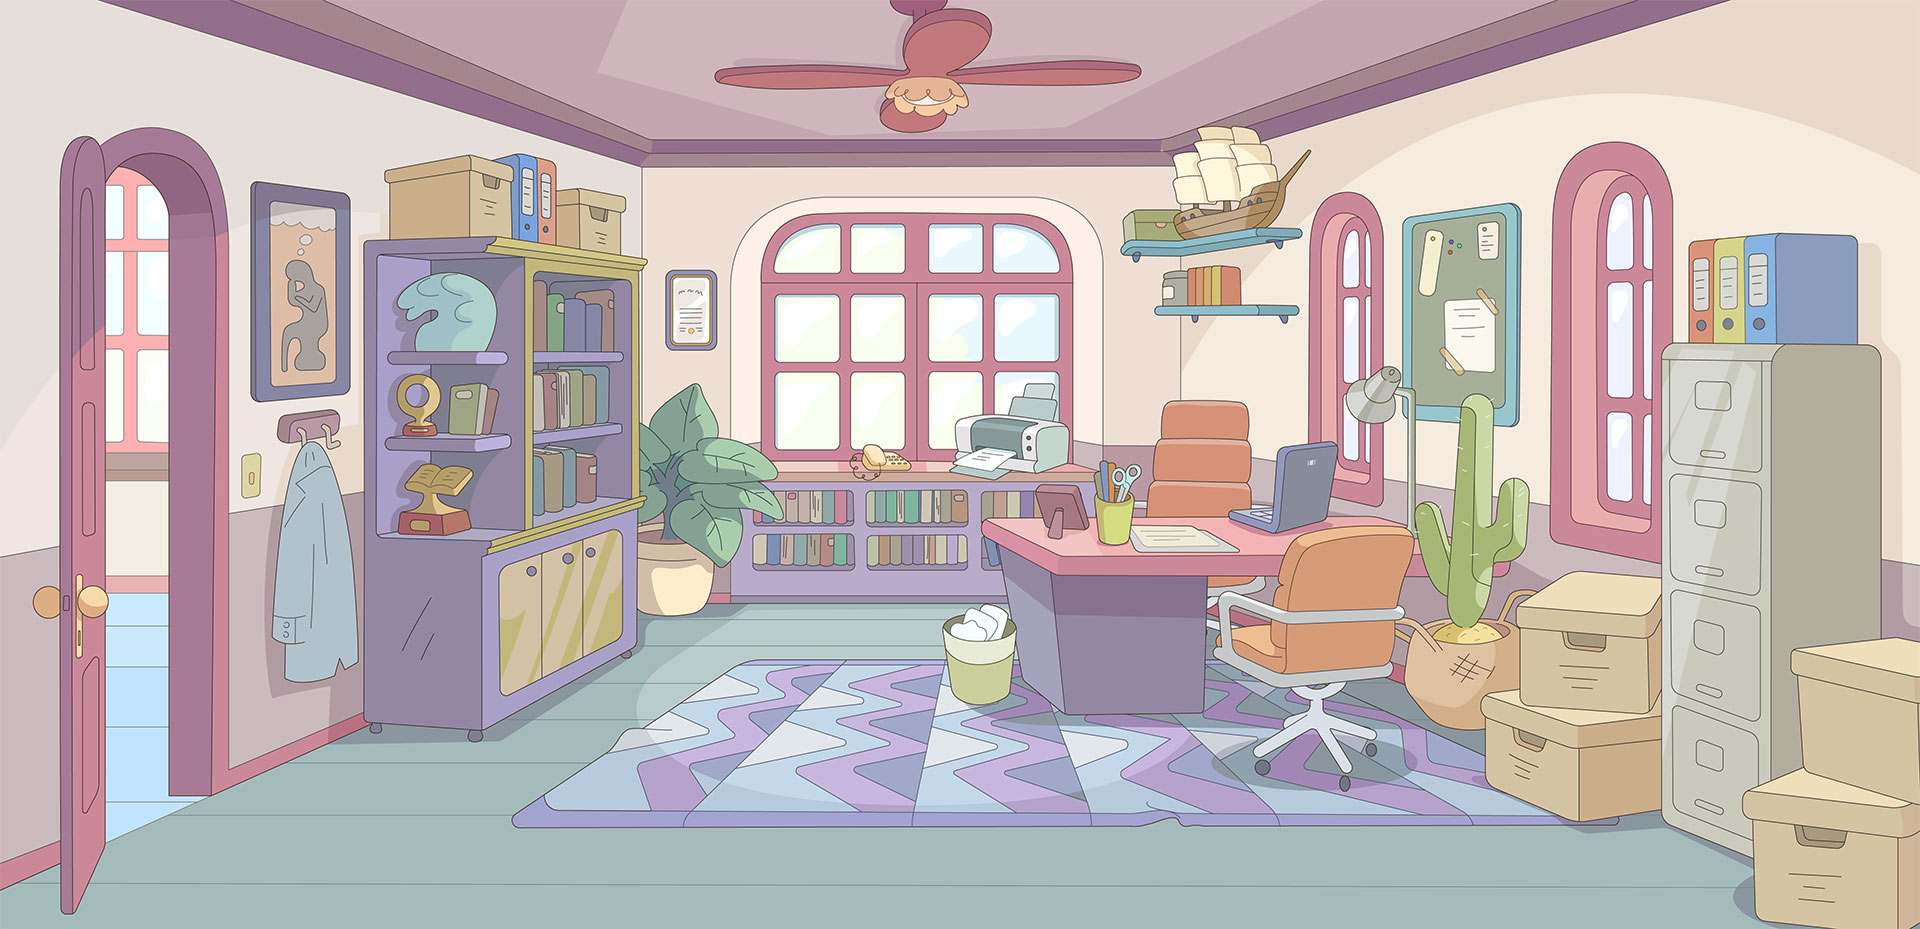 services_background_office_cartoon_52as.jpg